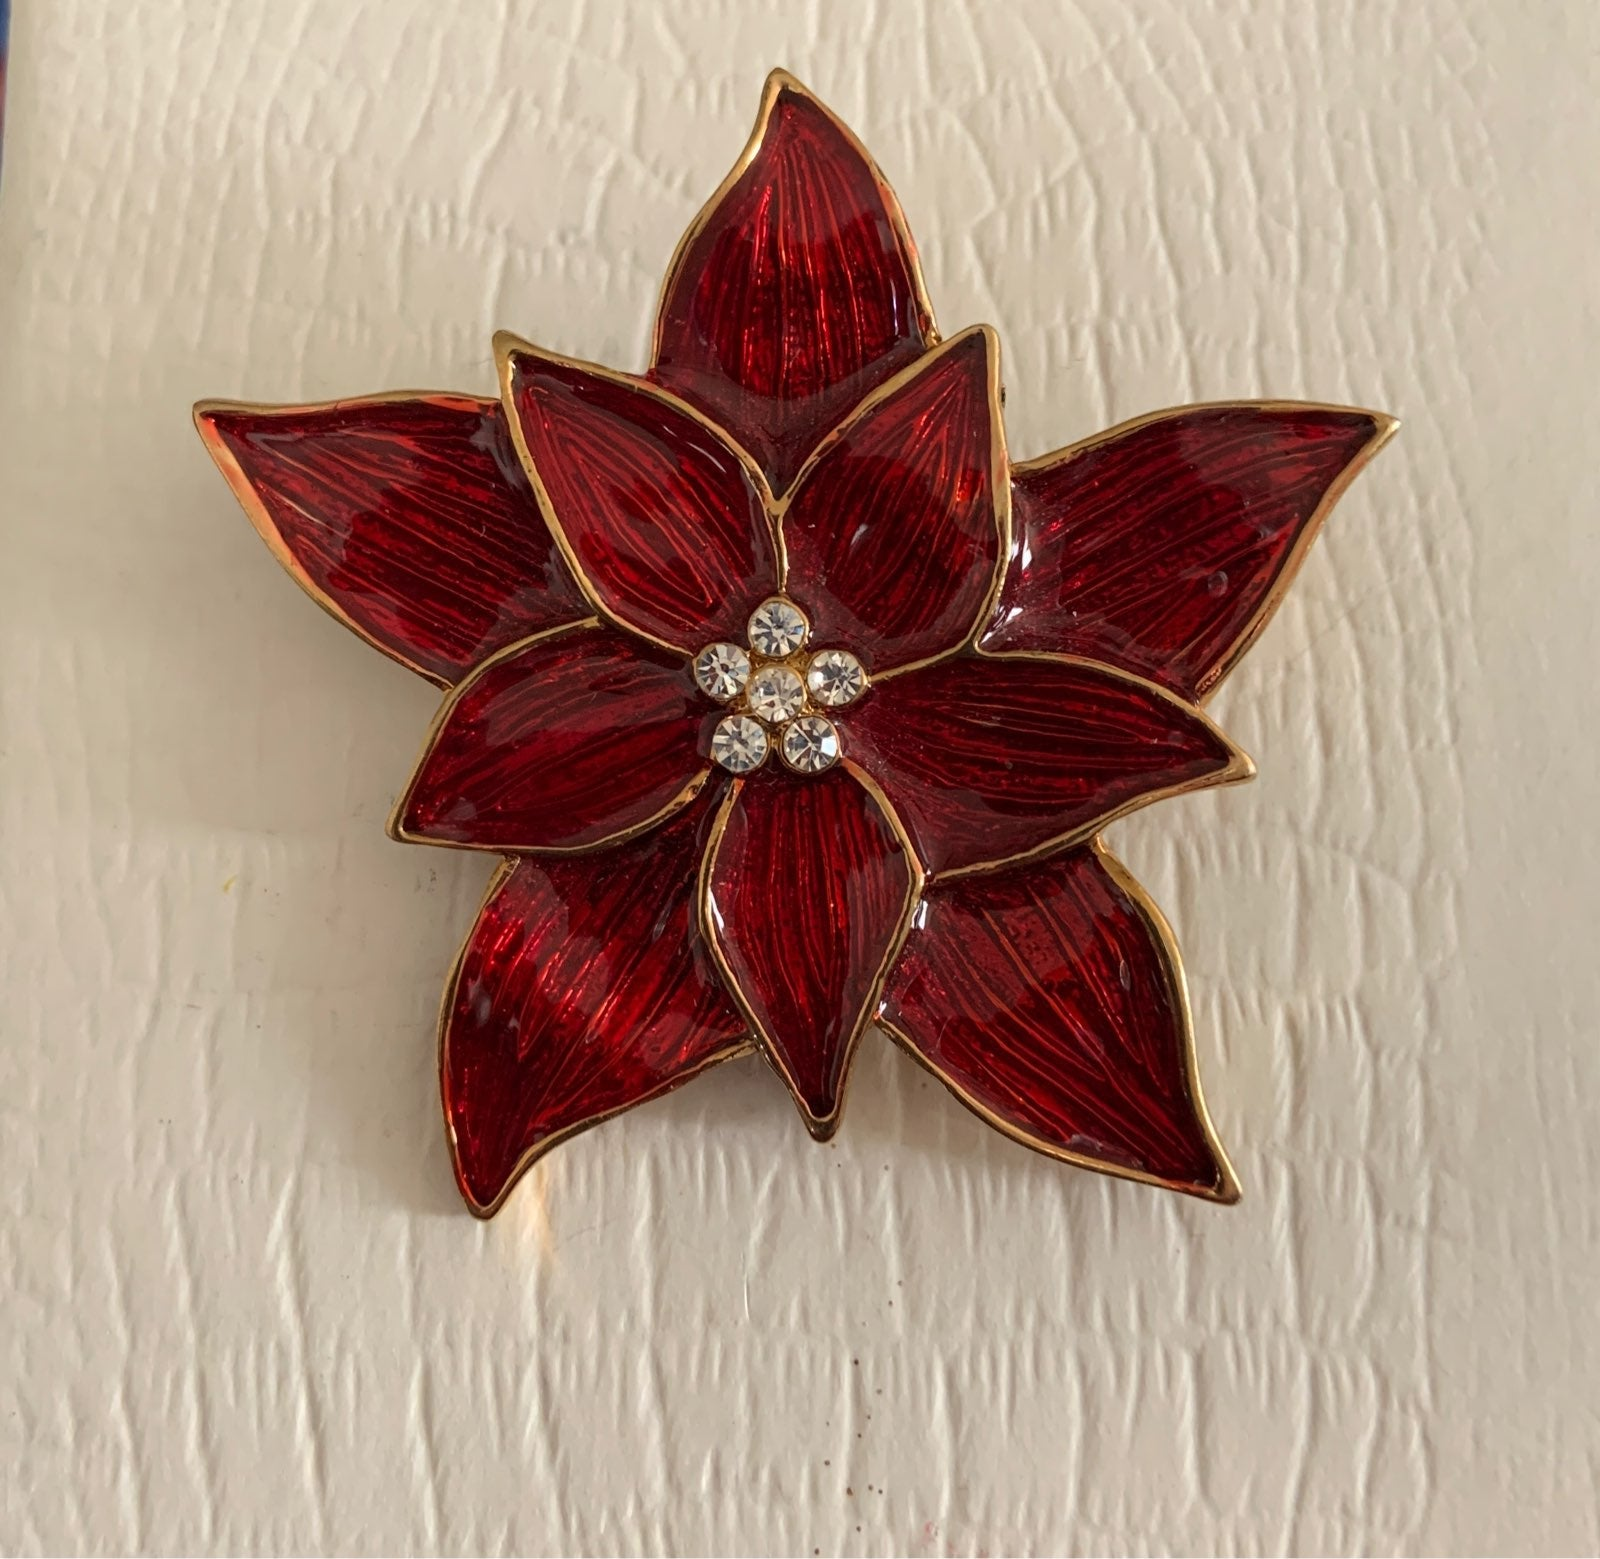 EISENBERG ICE Poinsettia Brooch Pin